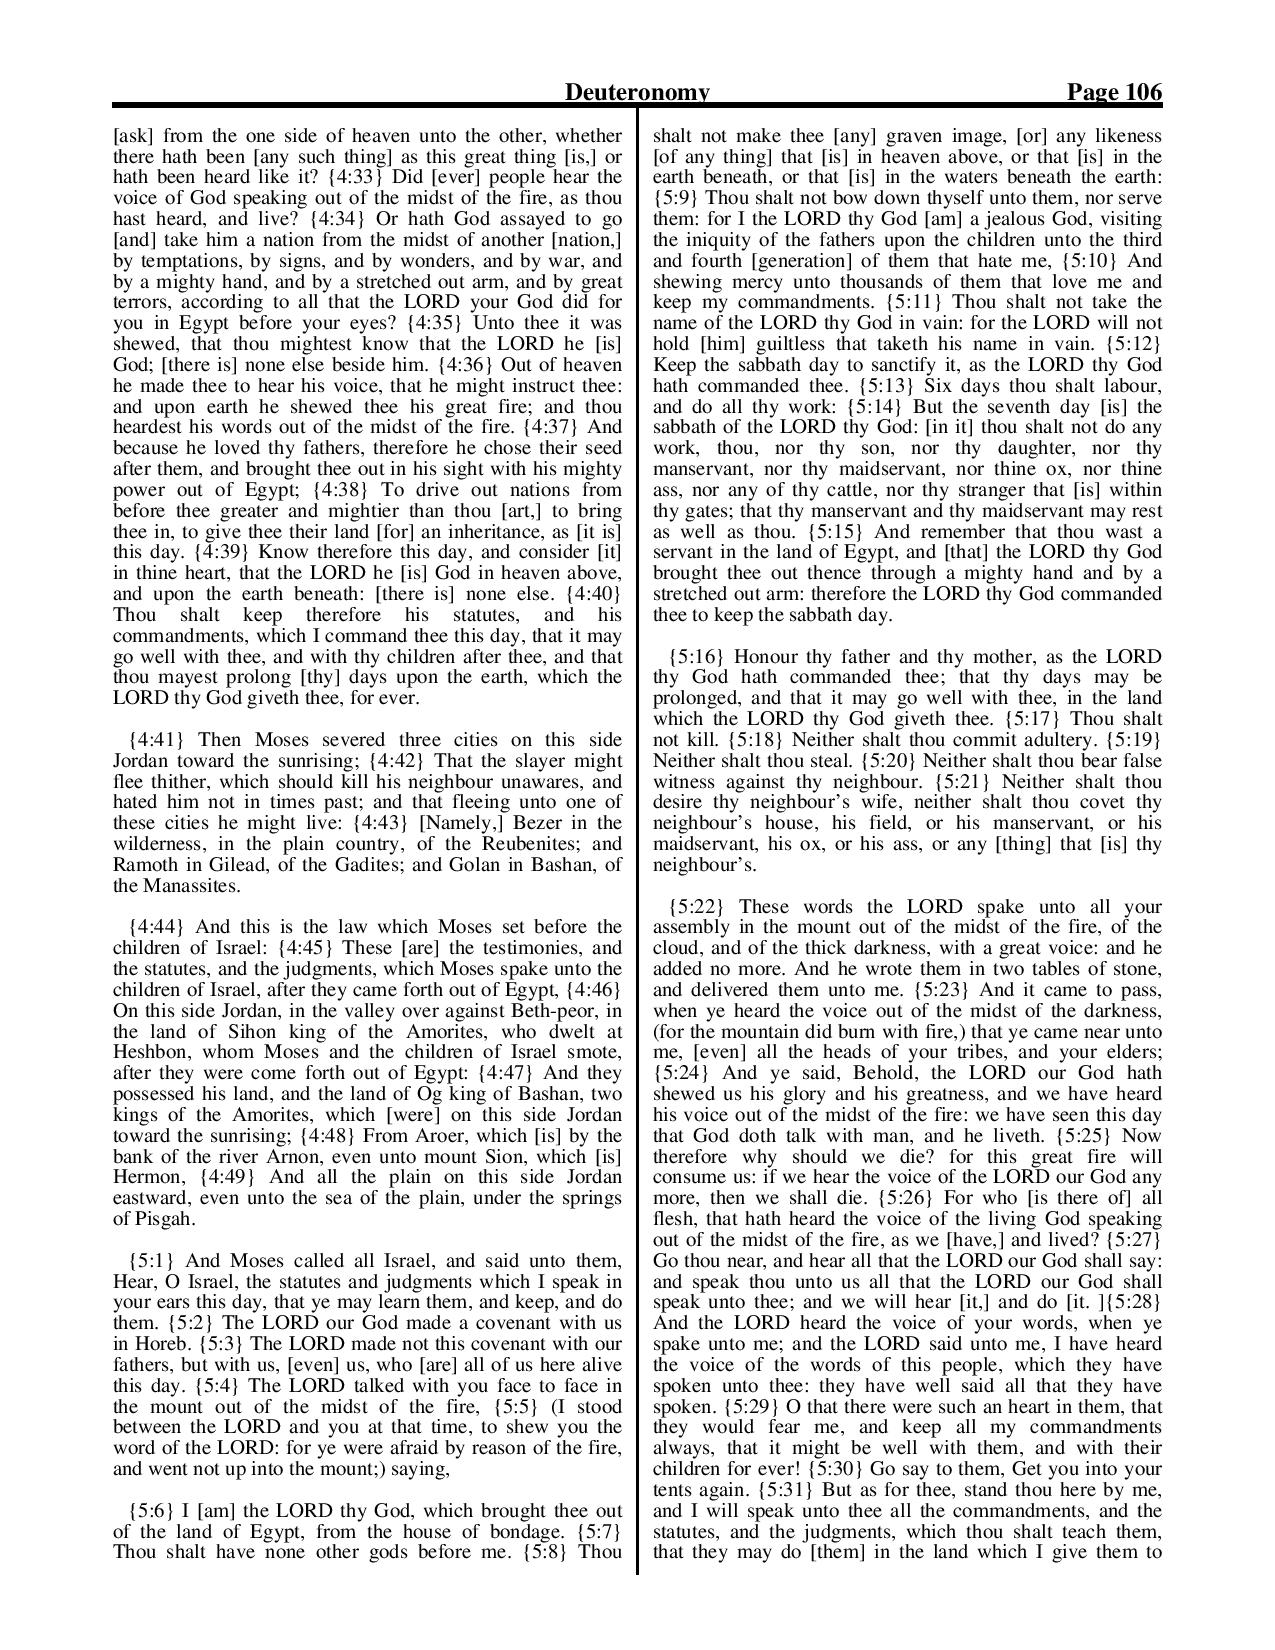 King-James-Bible-KJV-Bible-PDF-page-127